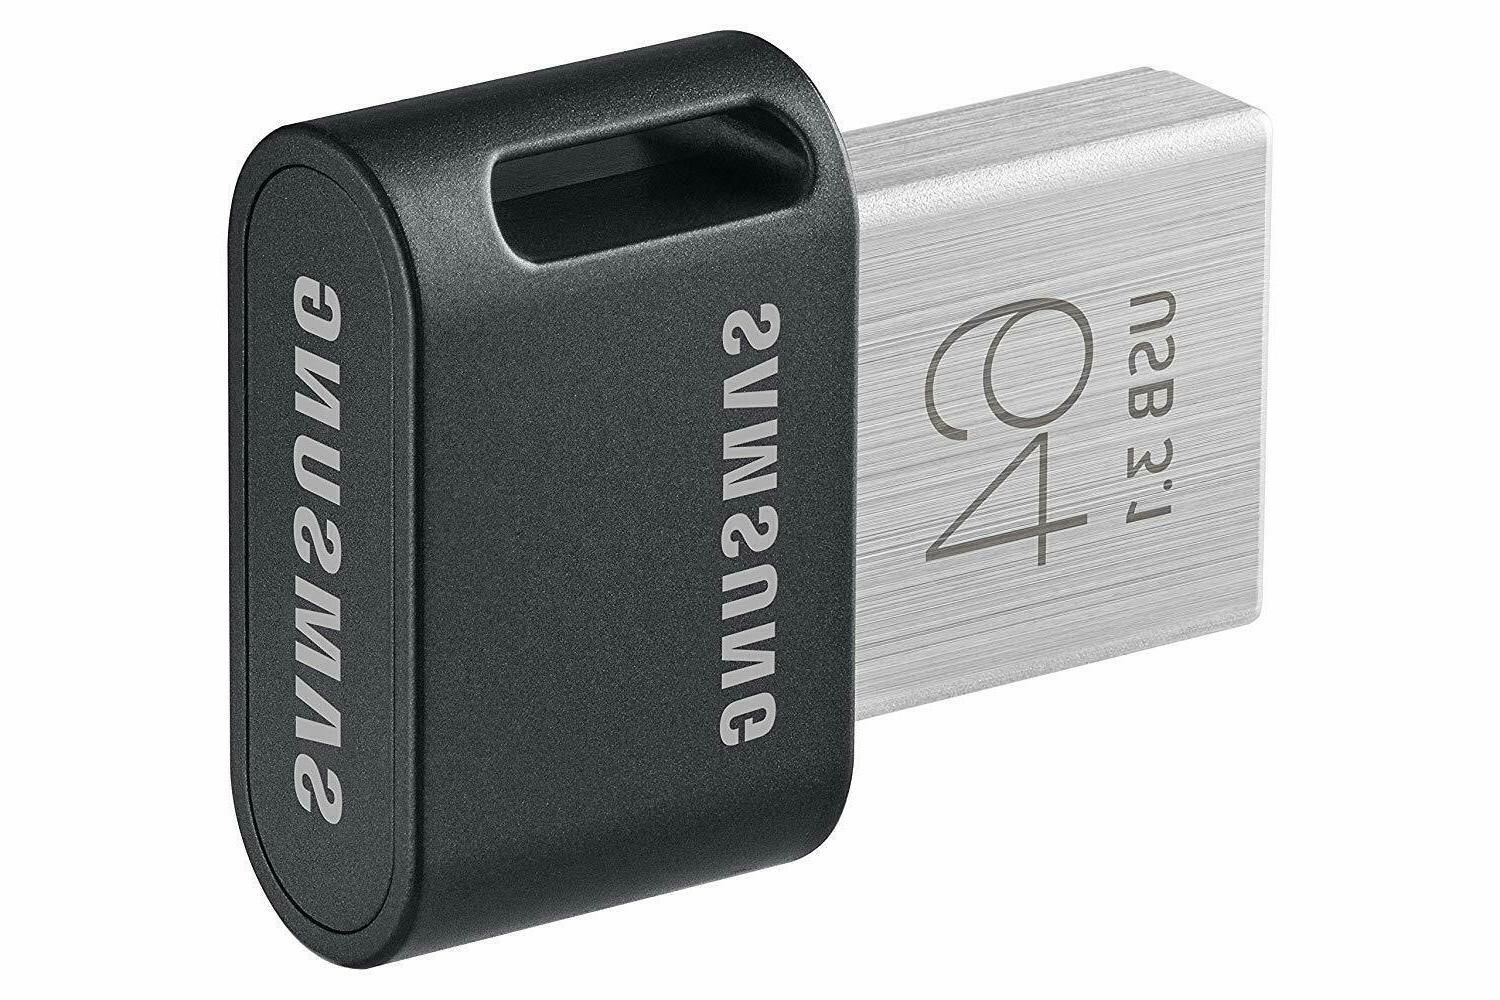 Samsung FIT USB 3.1 200MB/s 64G Flash Drive MUF-64AB